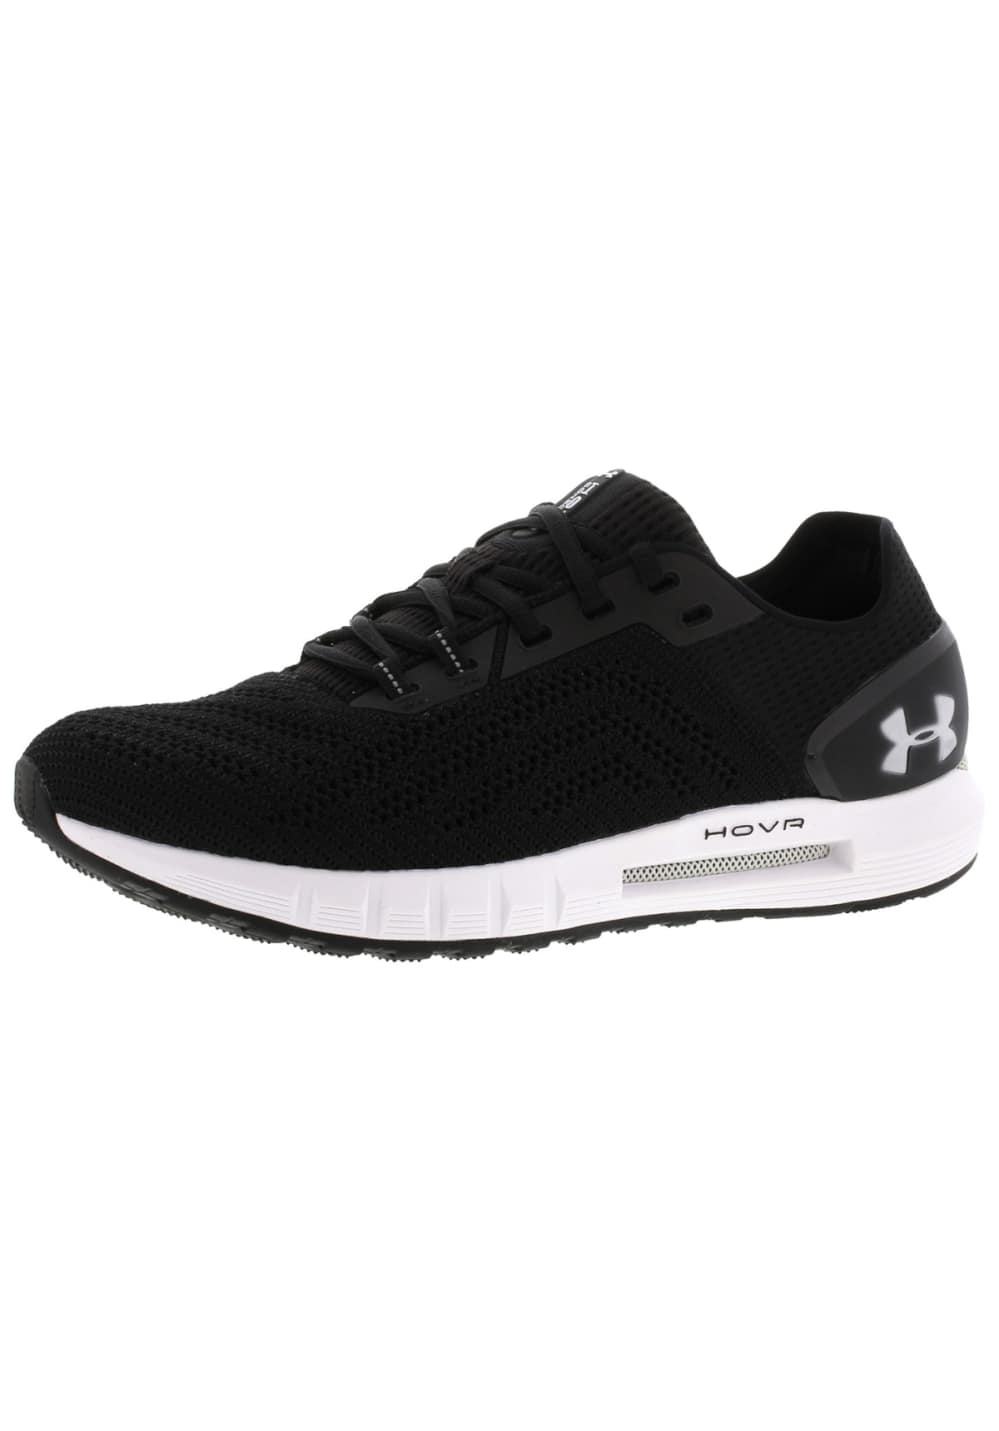 best service 11041 9a690 Under Armour Hovr Sonic 2 - Running shoes for Men - Black